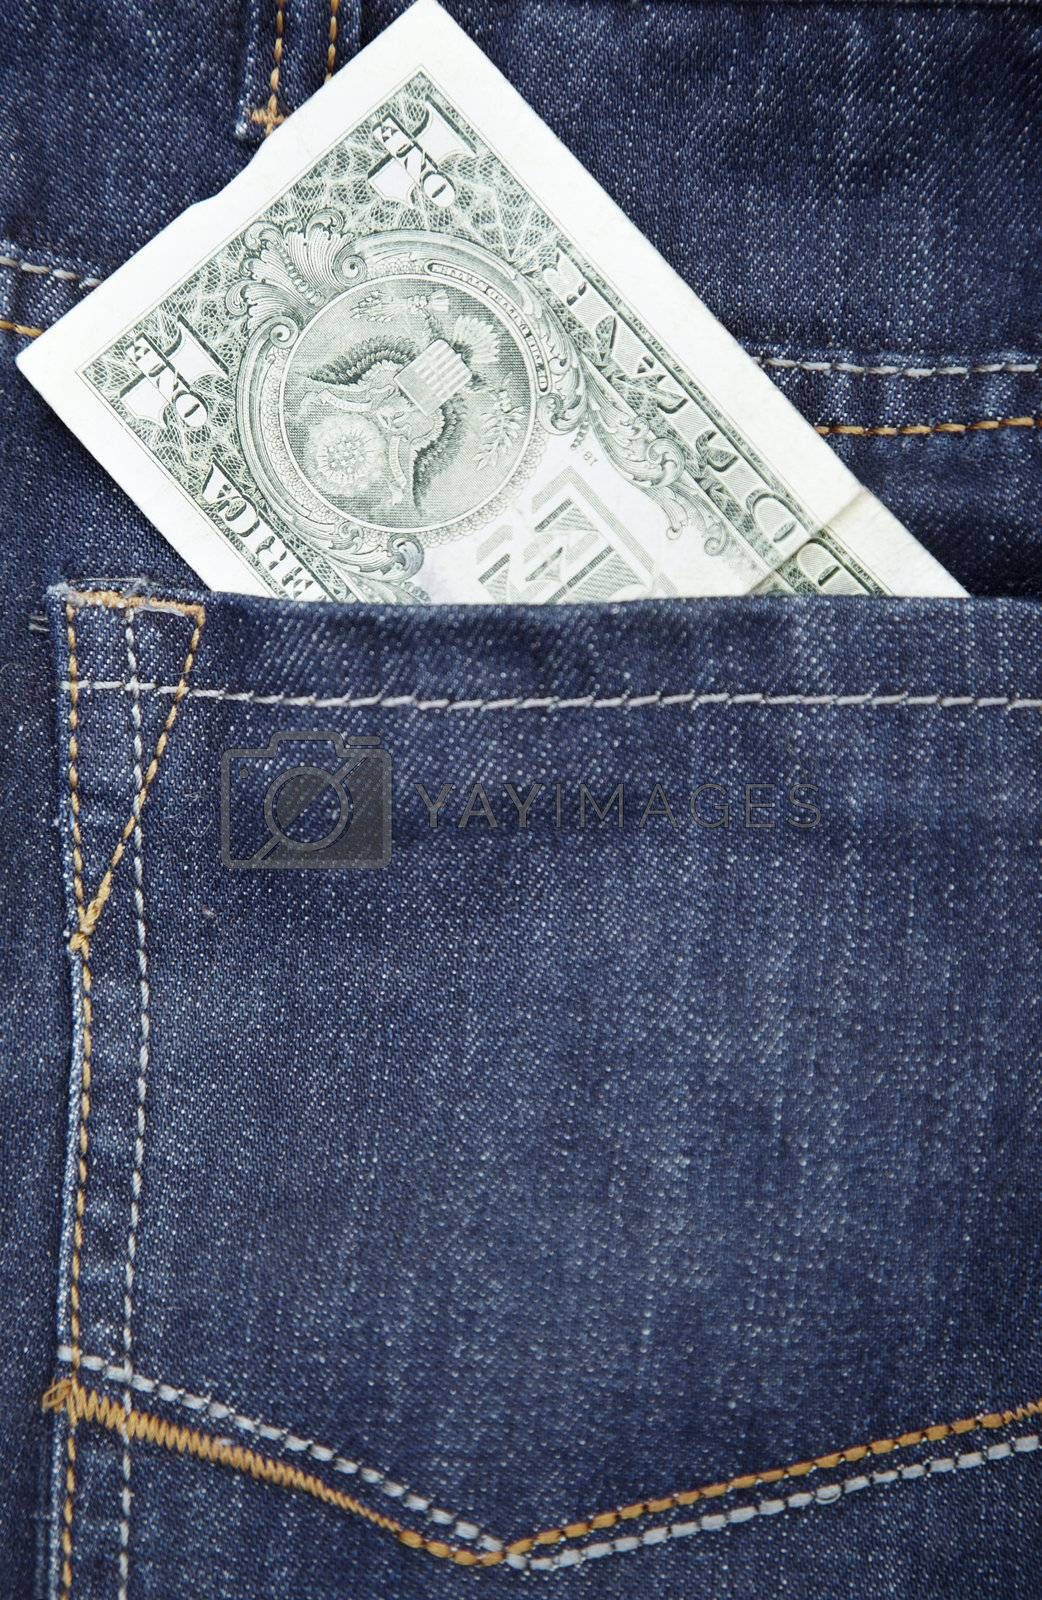 US dollar in the pocket of blue jeans. Close-up photo